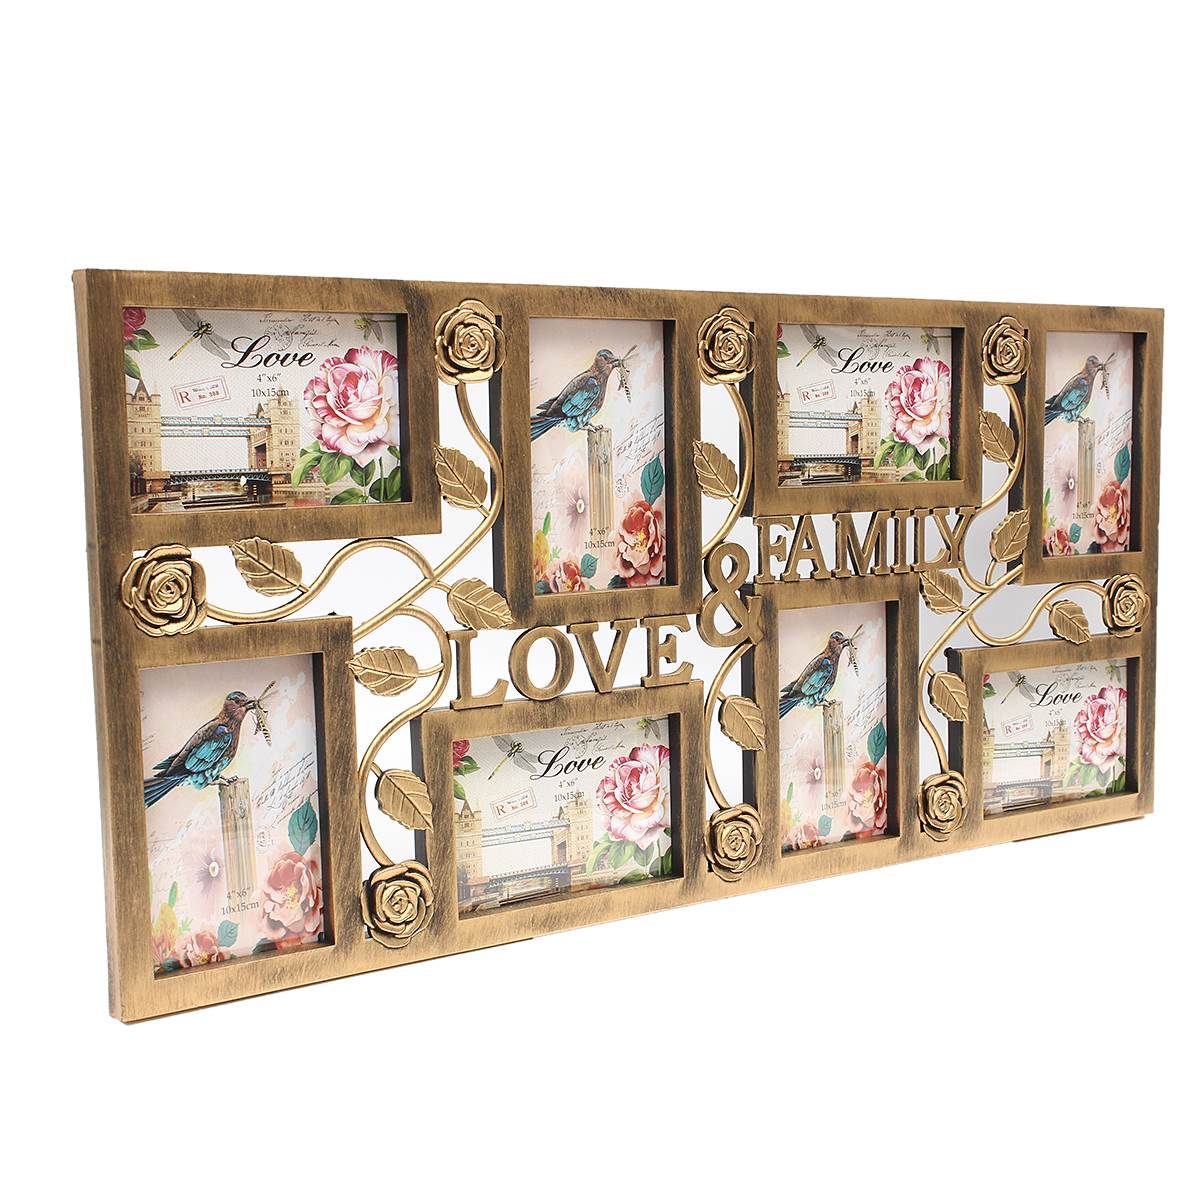 8 picture photo frame family love large multi wall hanging collage baby shower wedding birthday gift for home wall decoration